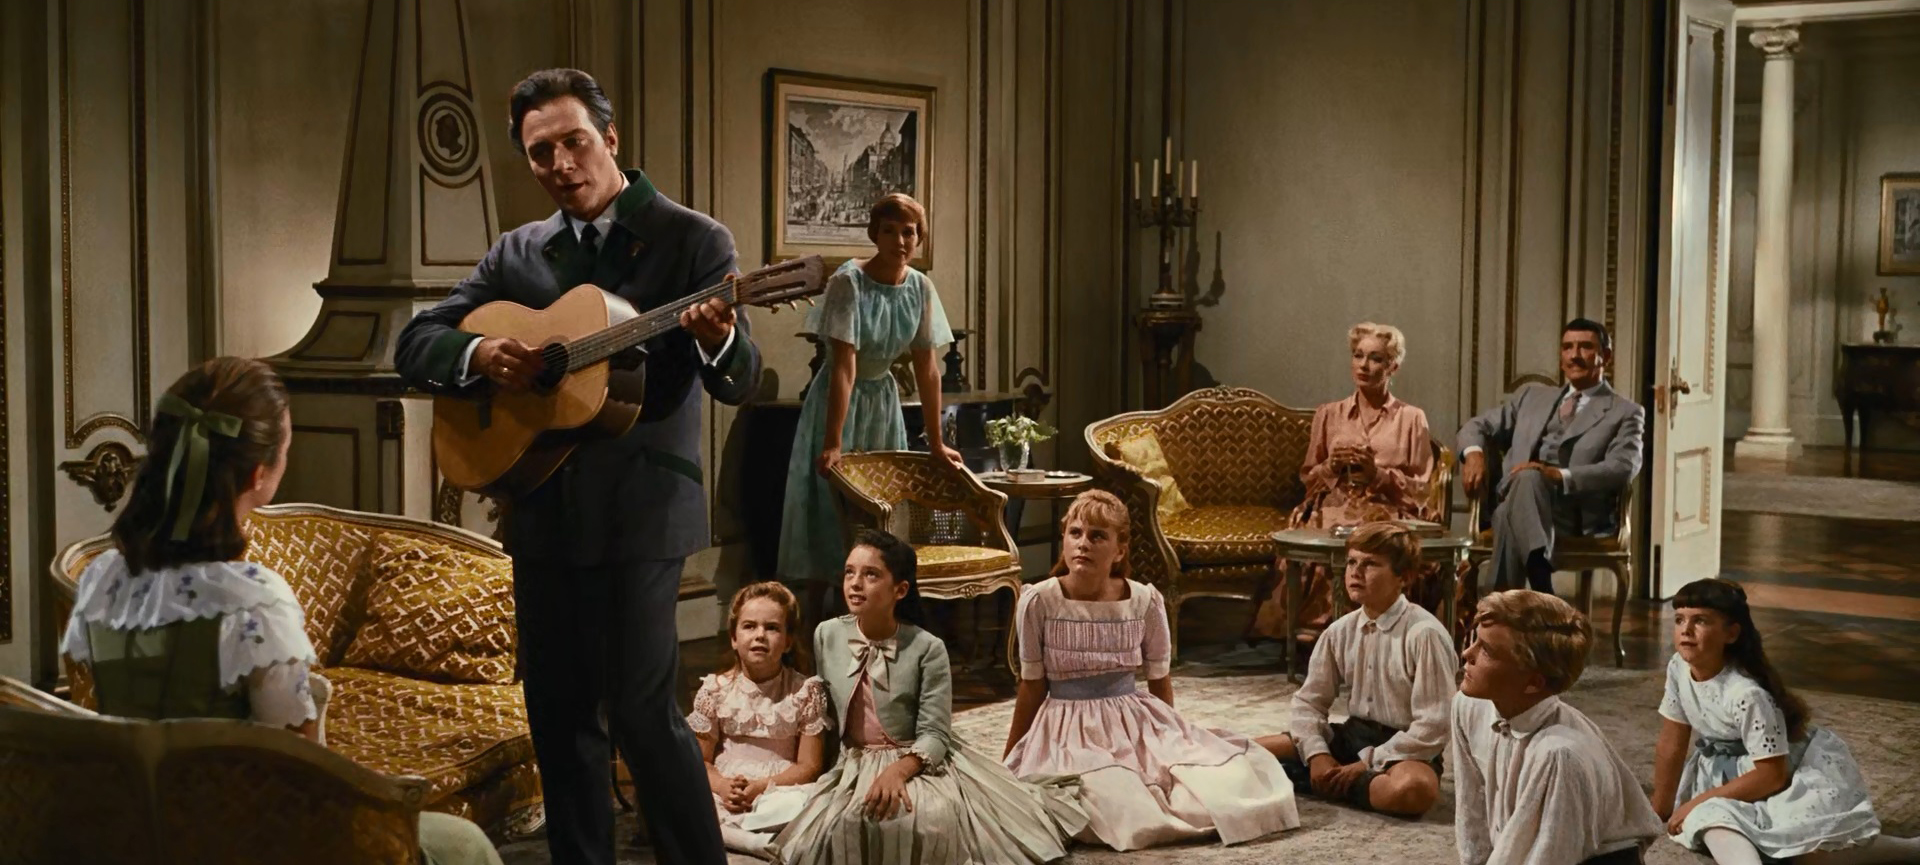 The Sound of Music | Events | Coral Gables Art Cinema